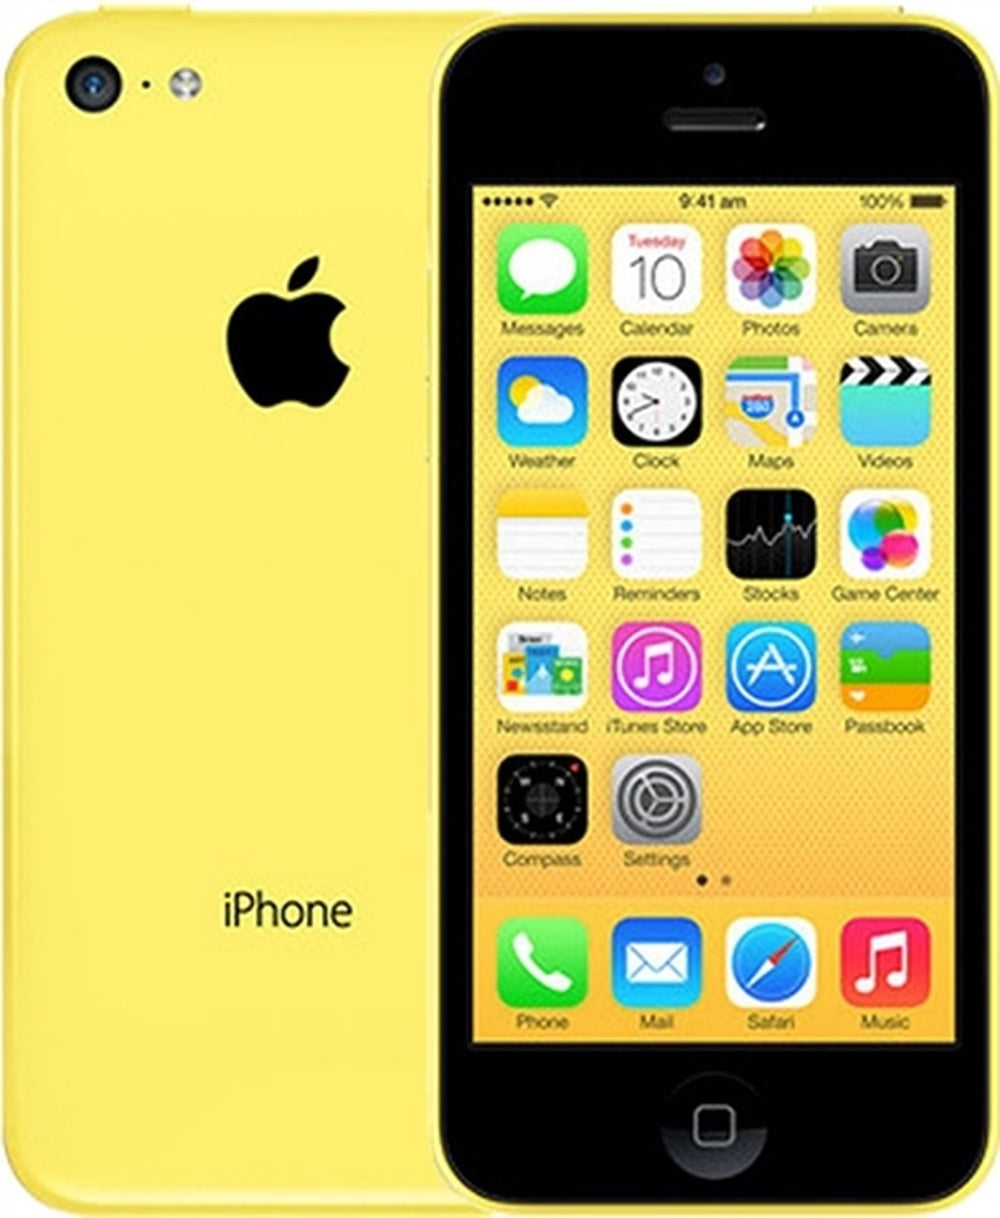 iPhone 5C 16GB Yellow GSM AT&T/T-Mobile ME506LL/A (B)